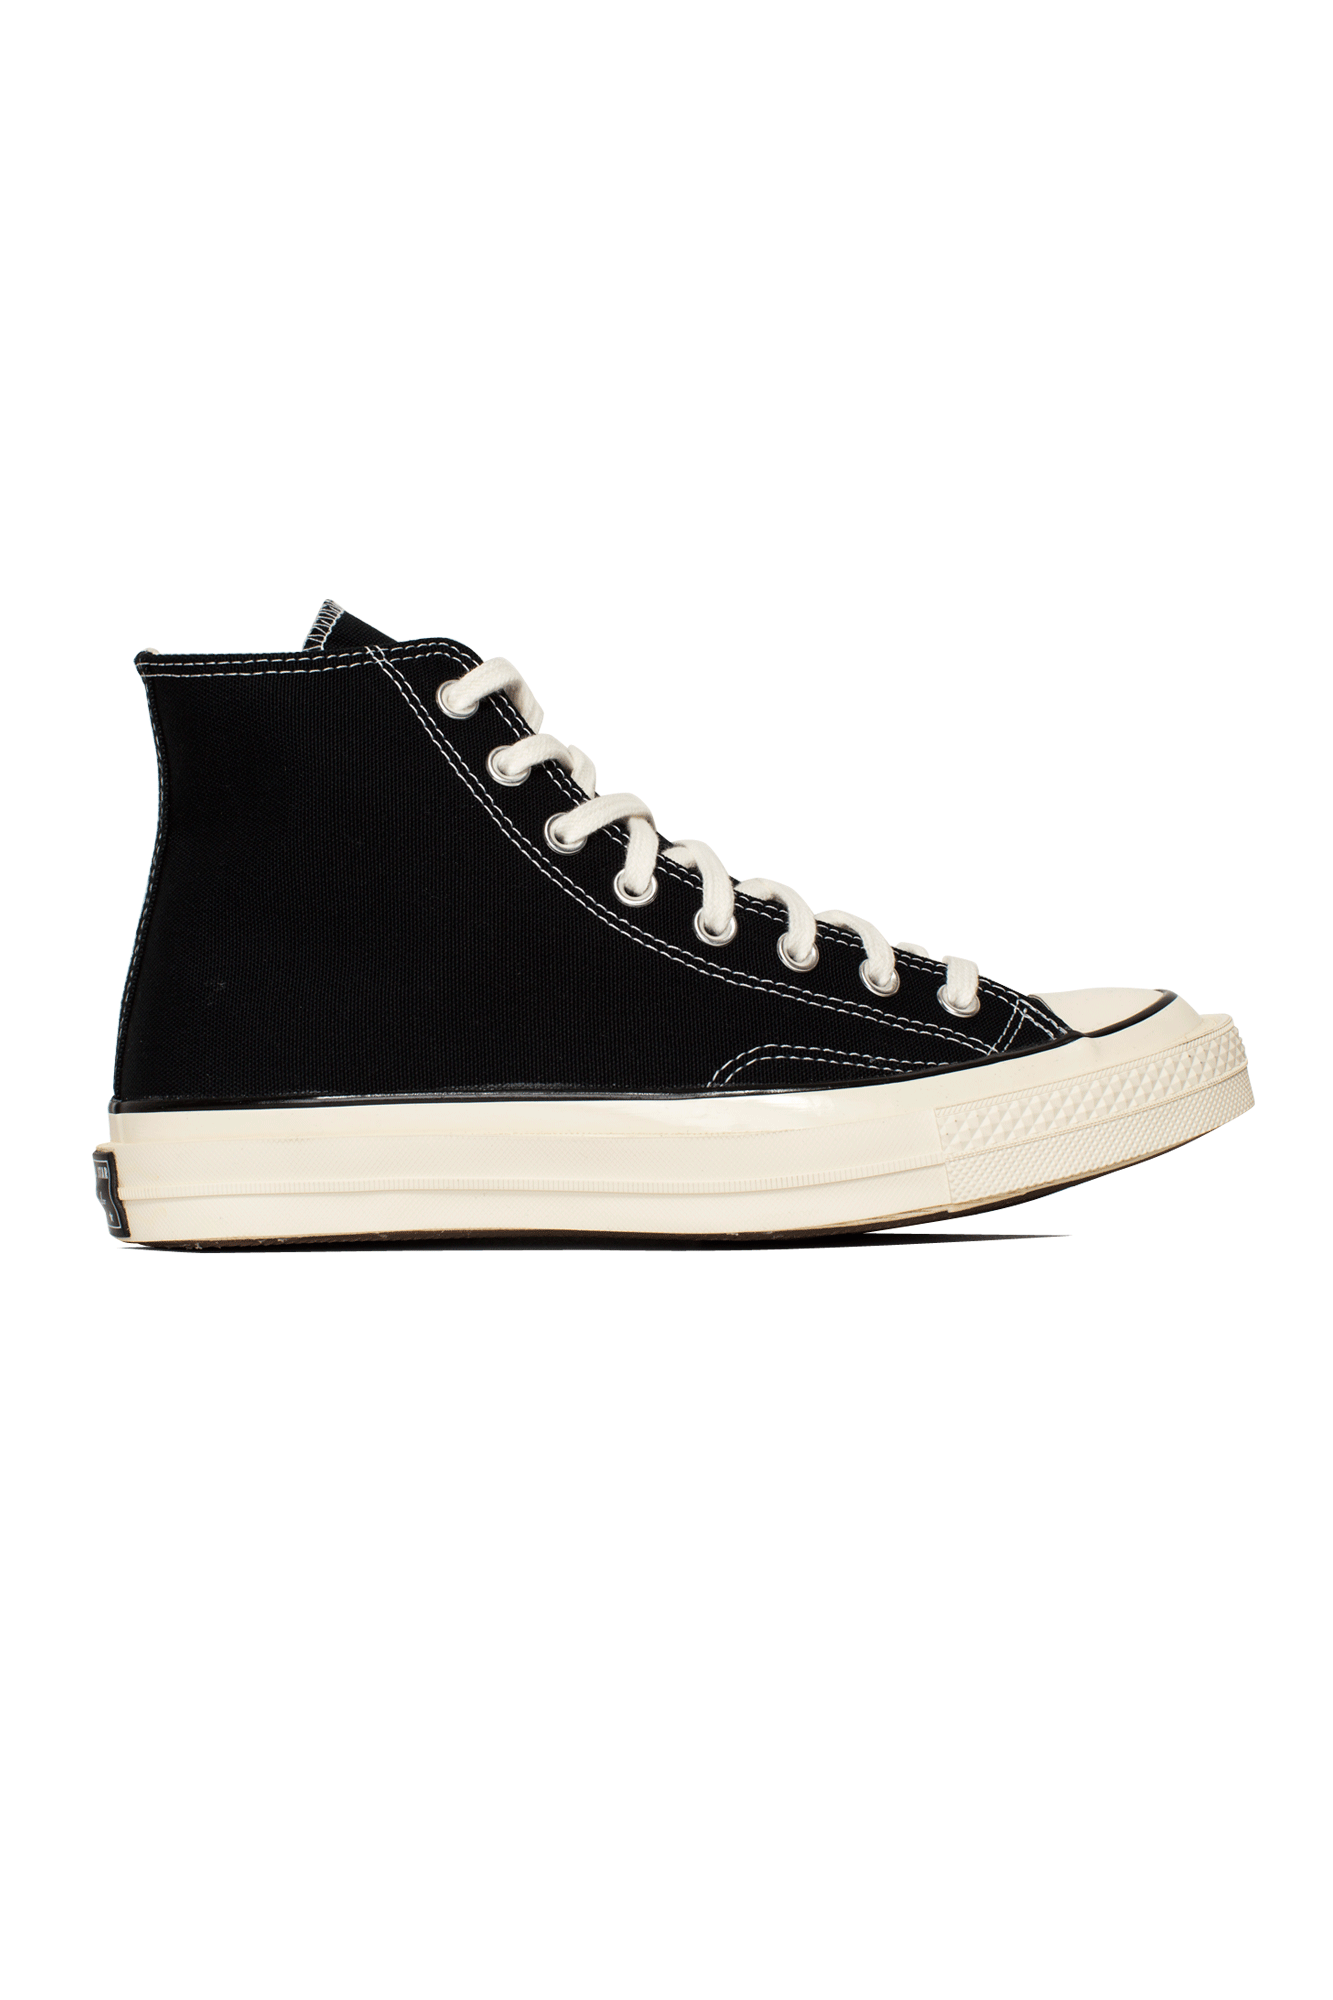 "Chuck 70 Canvas LTD Hi ""Double Foxing"" Black"